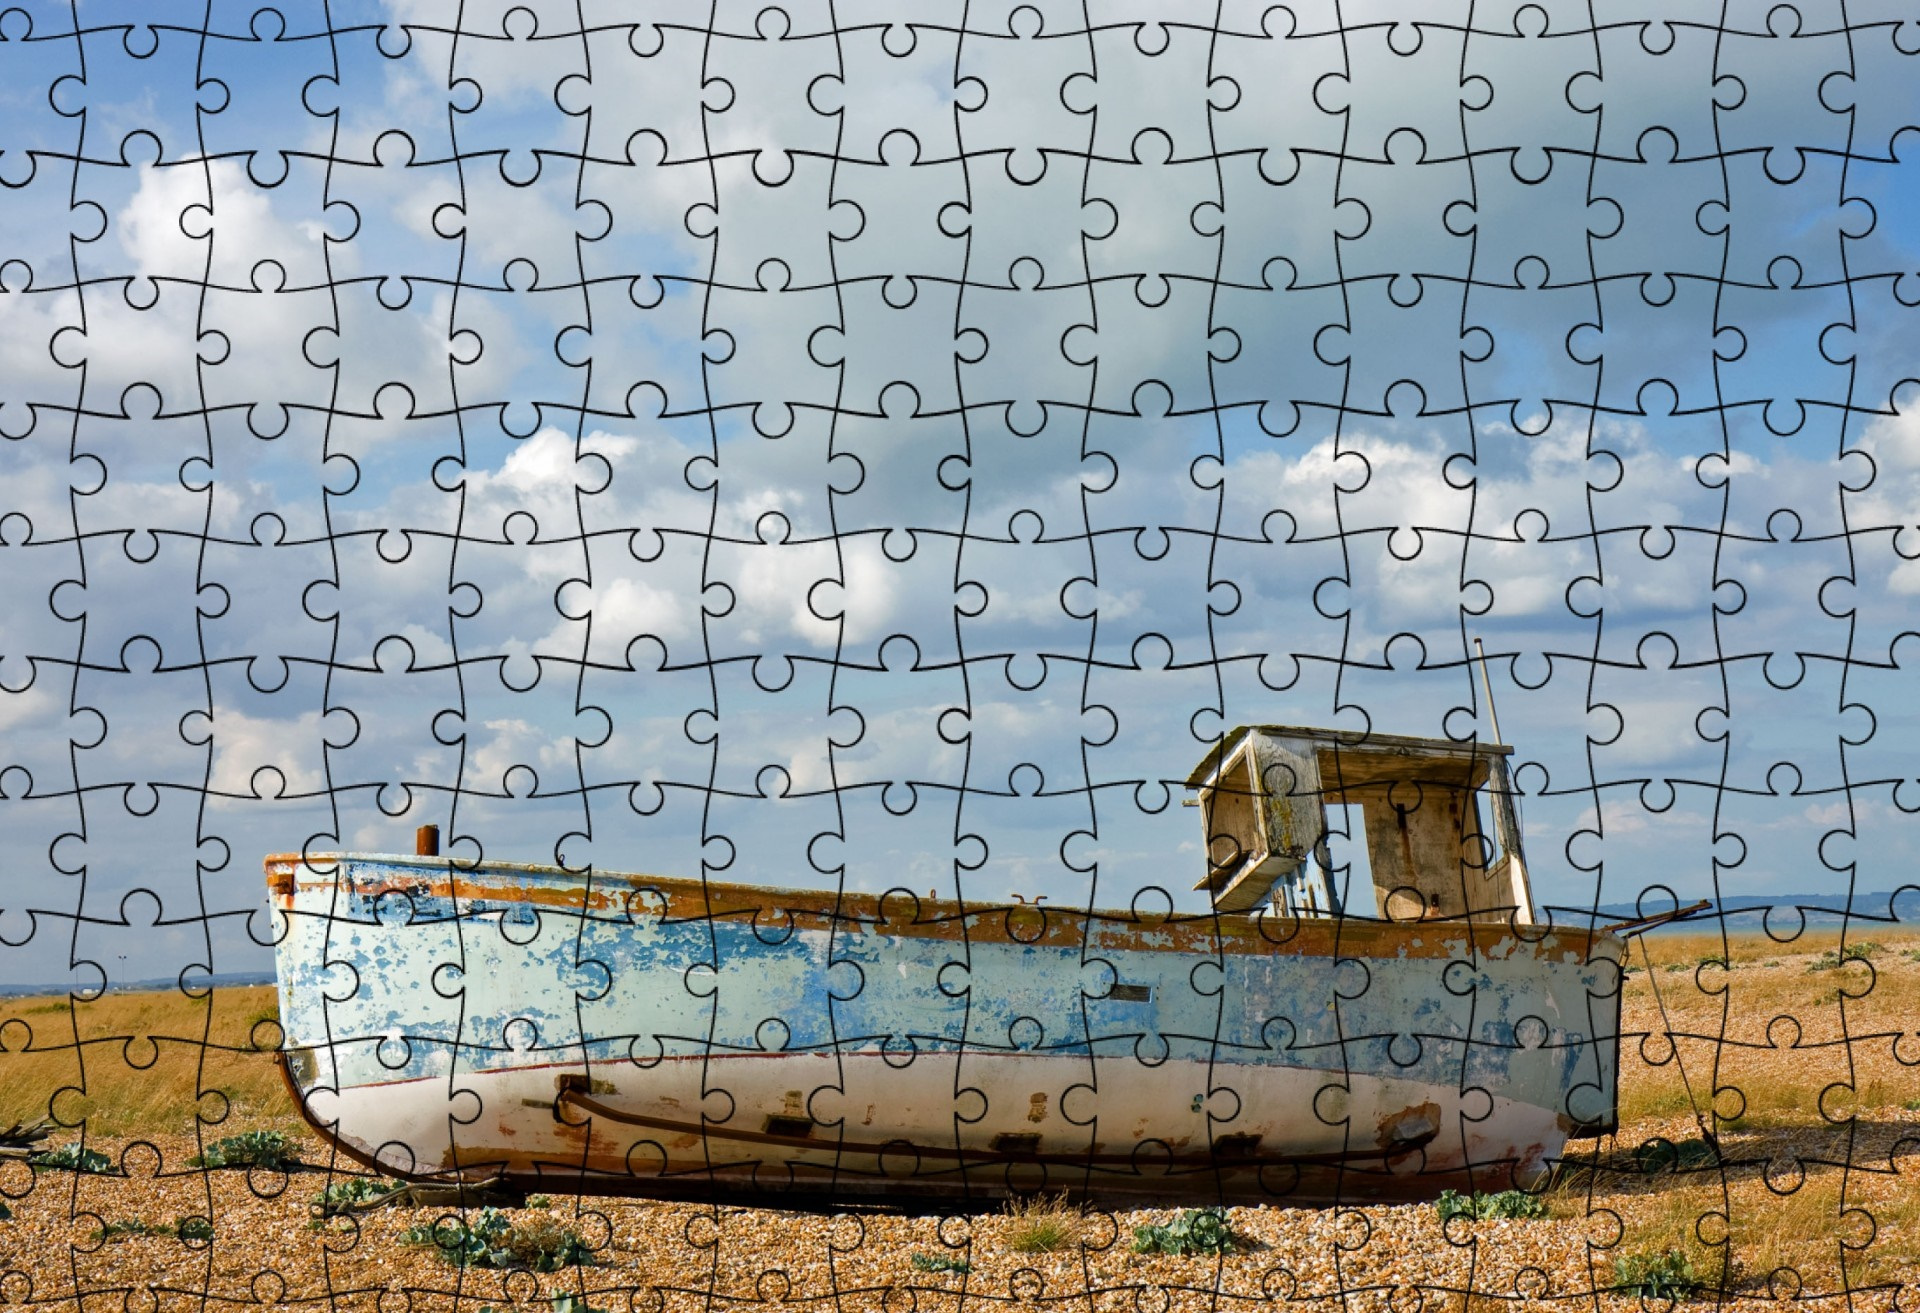 Jigsaw puzzle of a boat